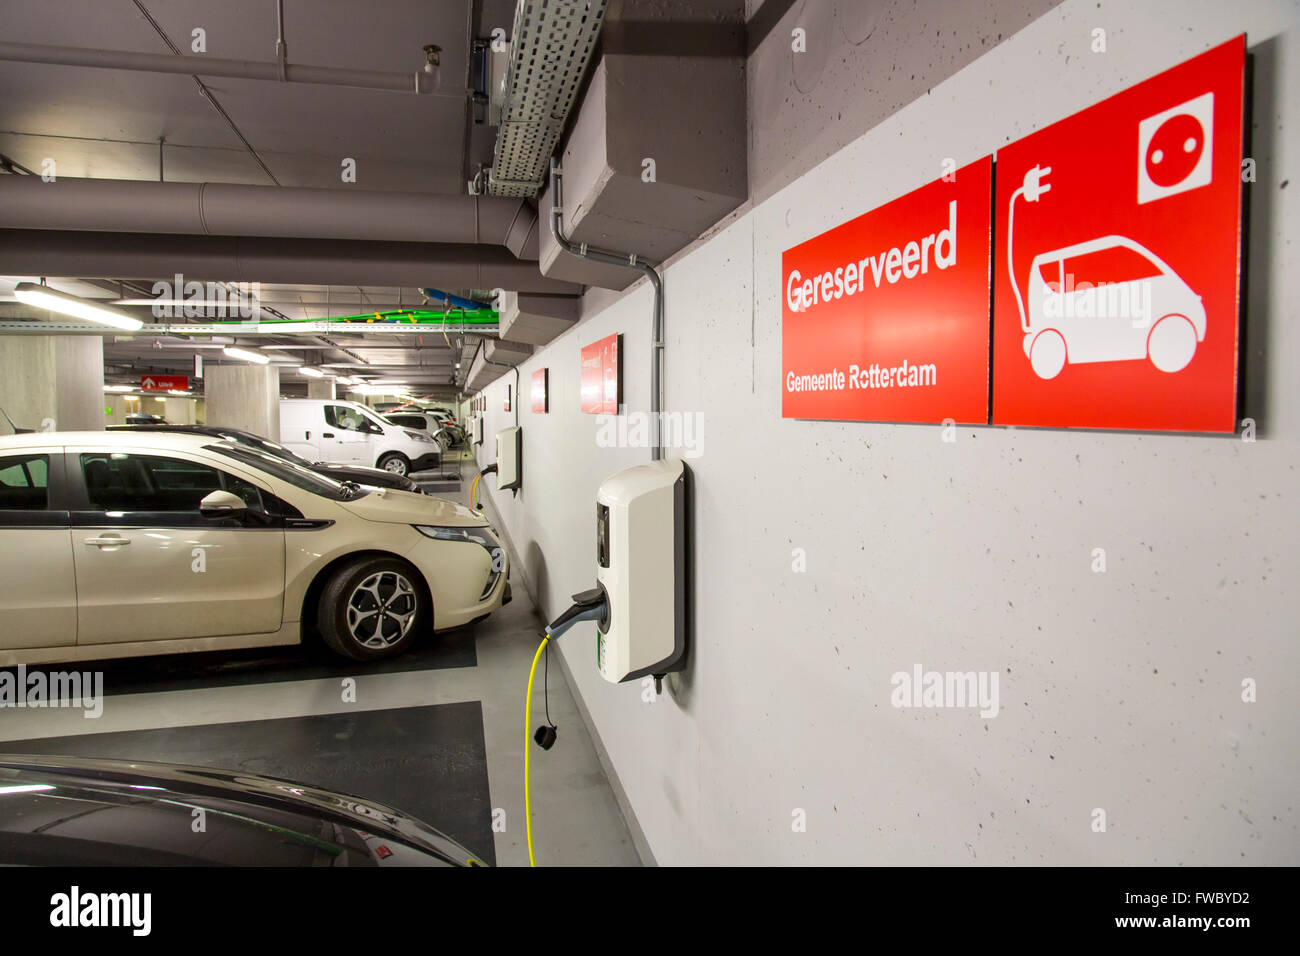 Charging Station For Electric Cars In A Public Parking Garage